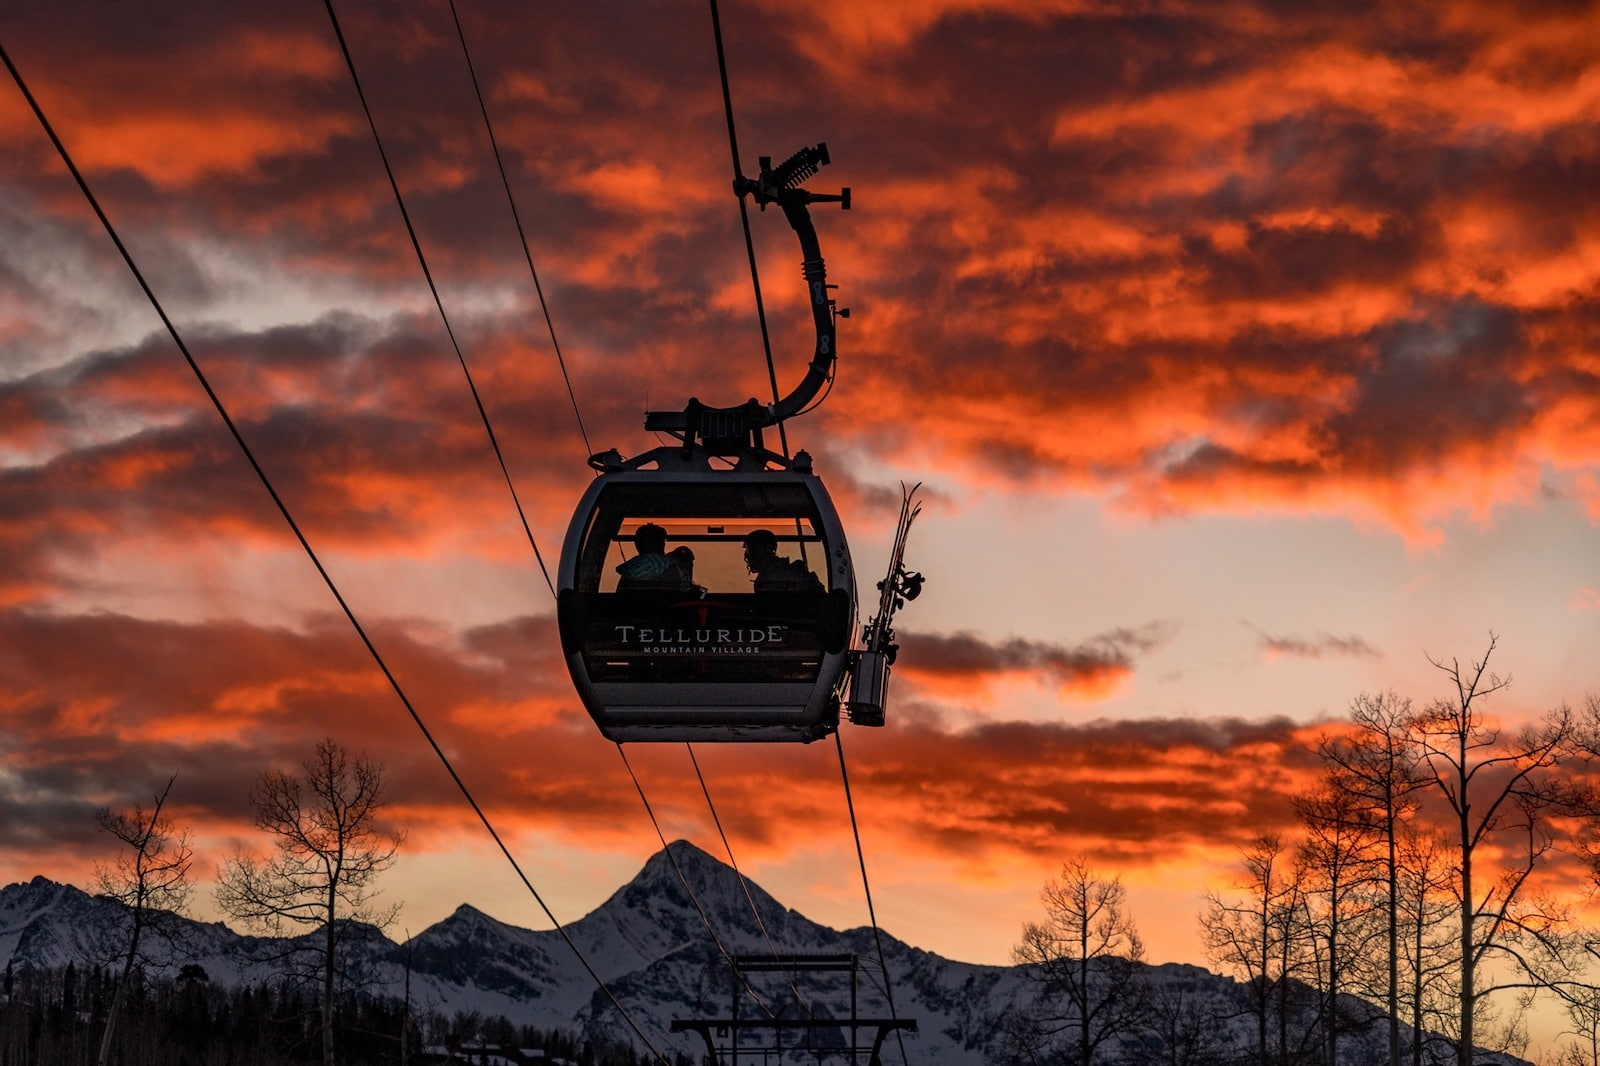 Image of the free Telluride gondola at sunset in Colorado